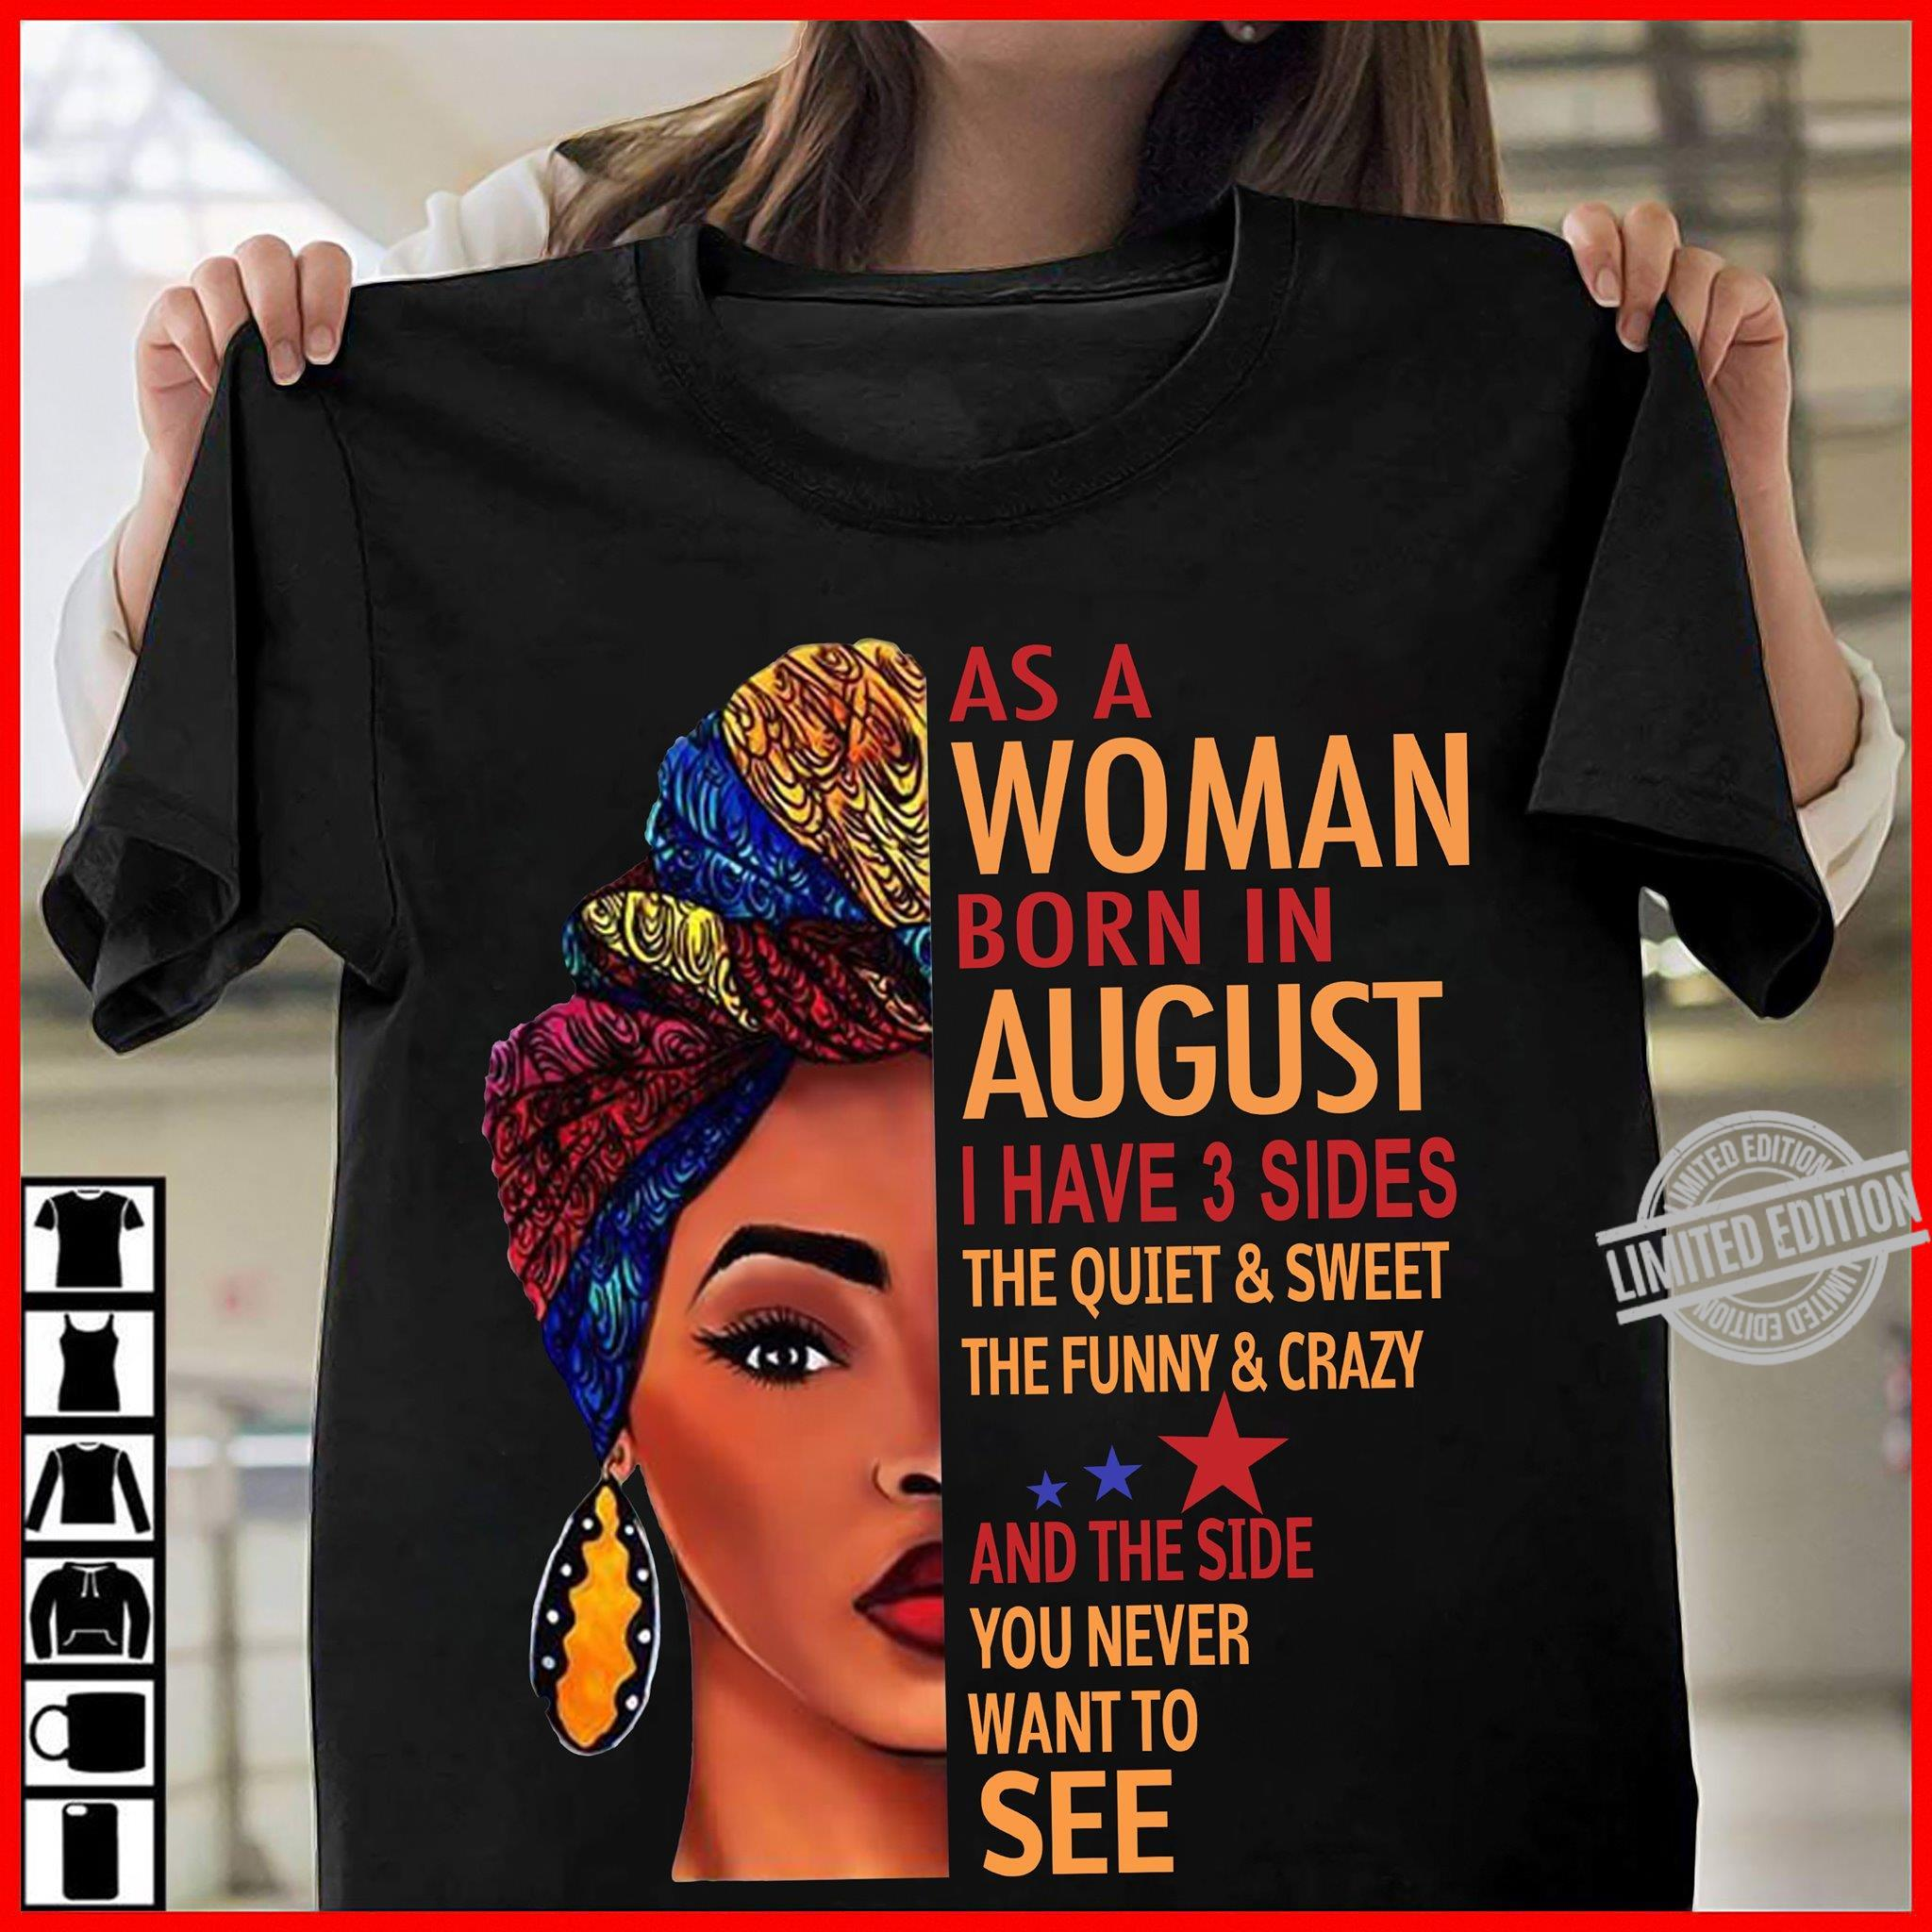 As A Woman Born In August I Have 3 Sides The Quiet & Sweet The Funny & Crazy And The Side You Never Want To See Shirt